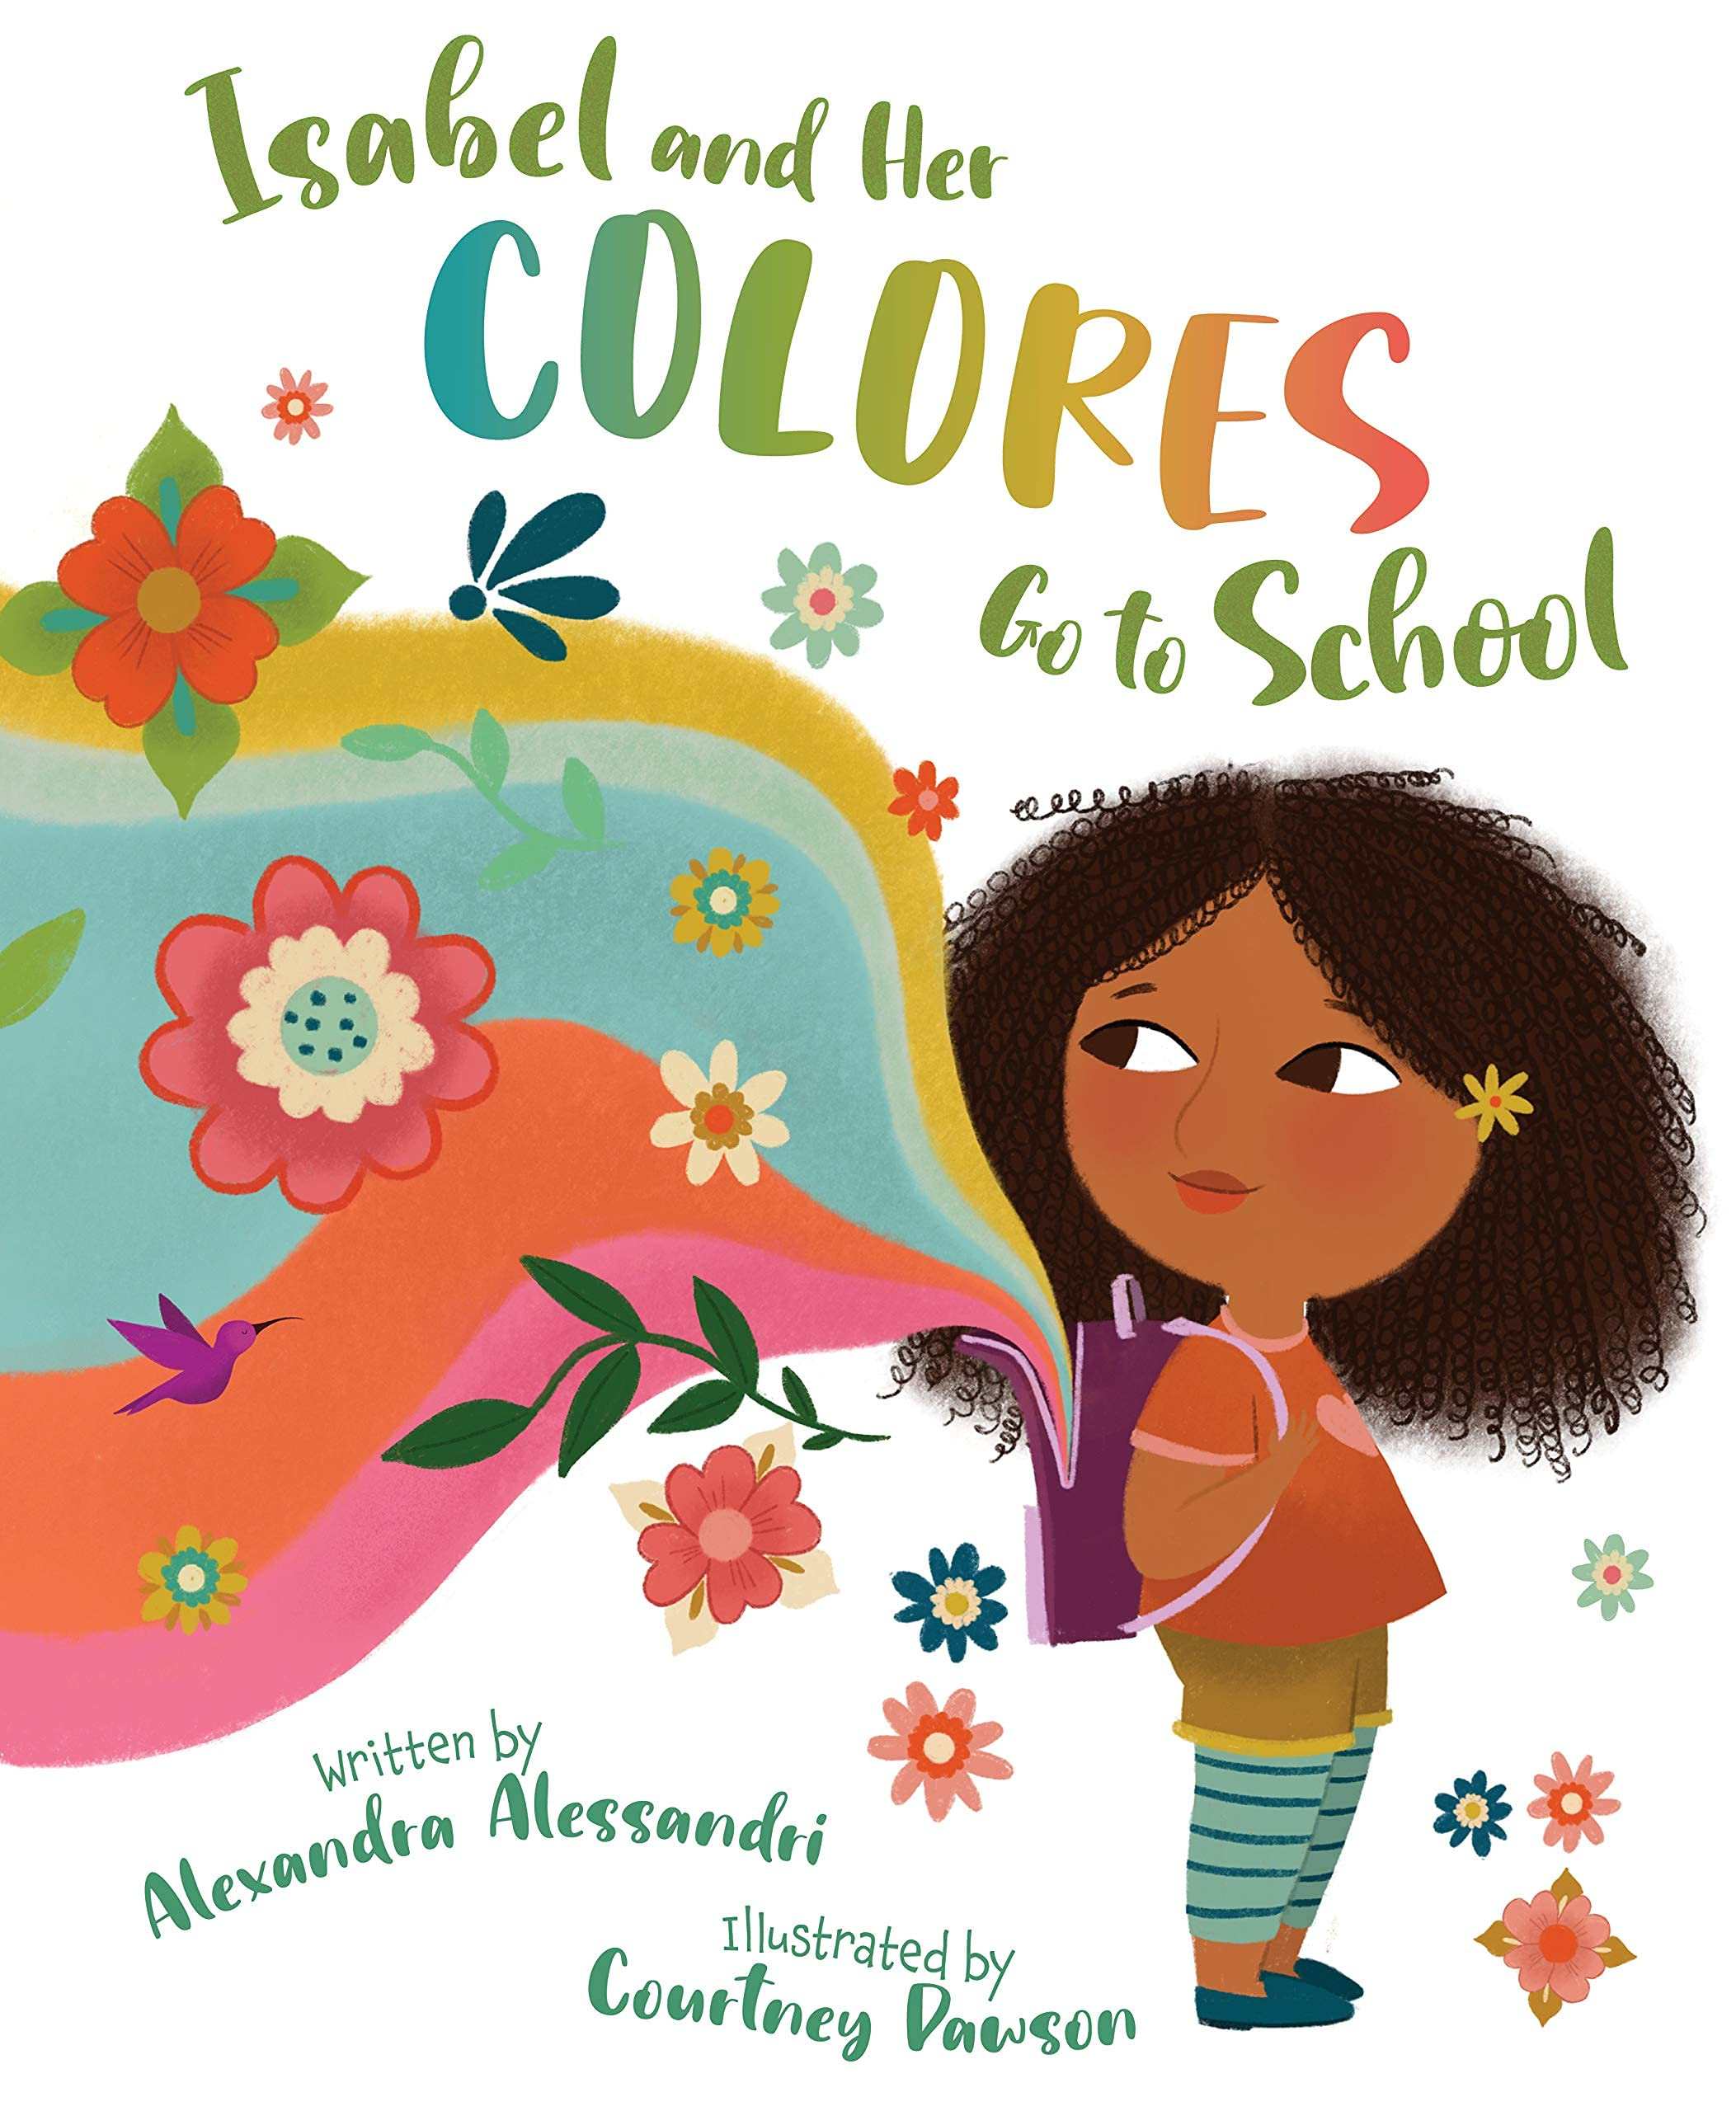 celebrate-picture-books-picture-book-review-isabel-and-her-colores-go-to-school-cover